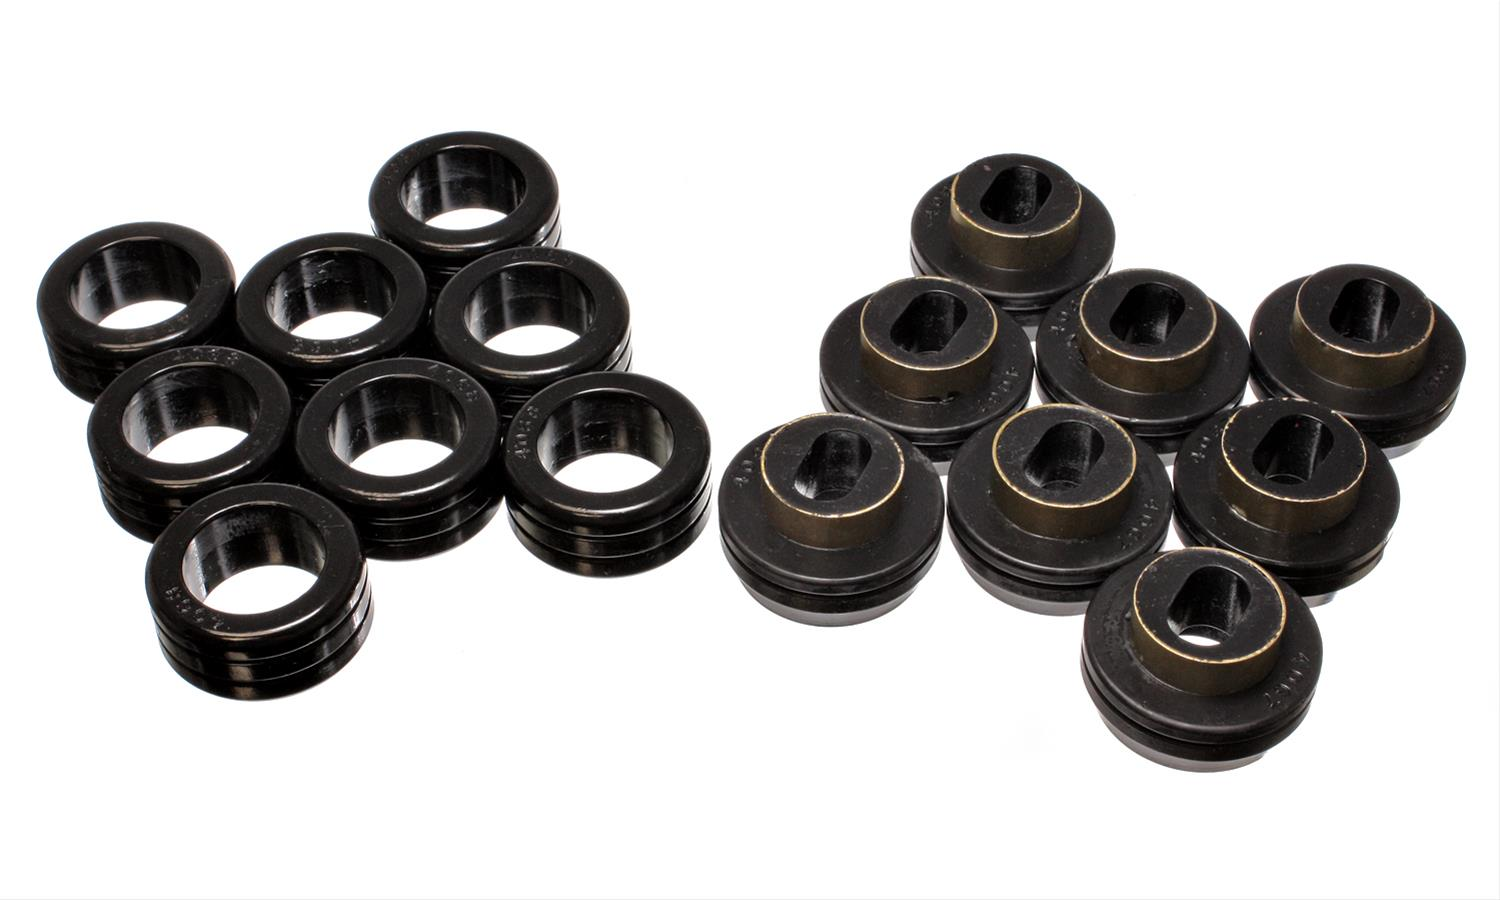 Energy Suspension Body Mount Bushings 44121g Free Shipping On 1949 Ford F1 Cab Mounts Orders Over 99 At Summit Racing